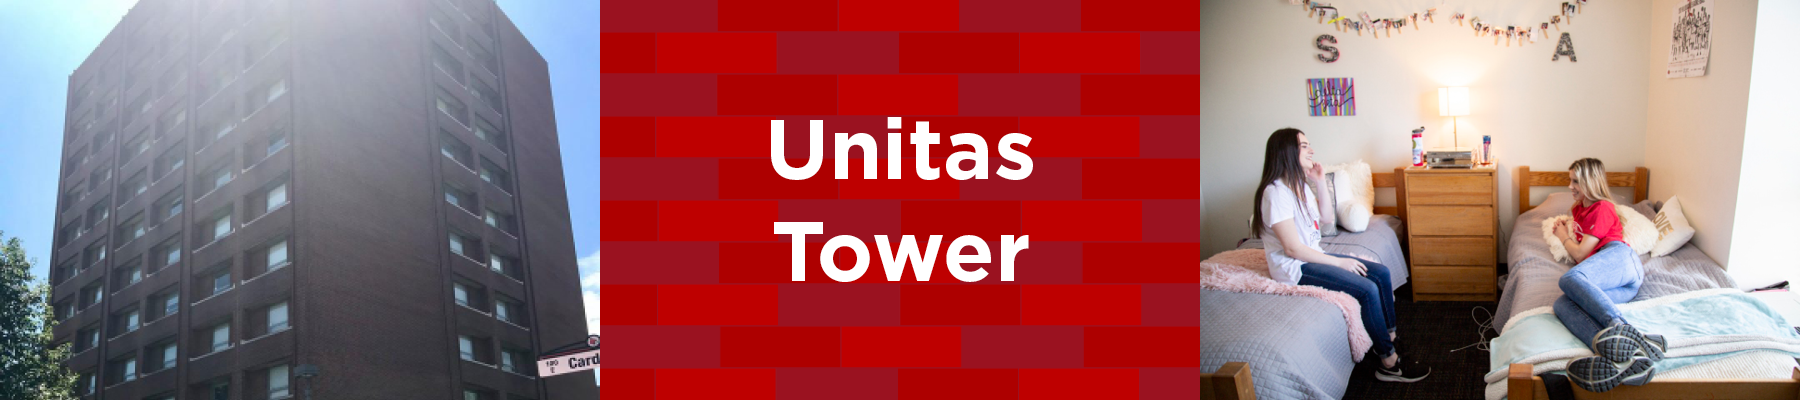 exterior of unitas tower and students on bed in unitas double room